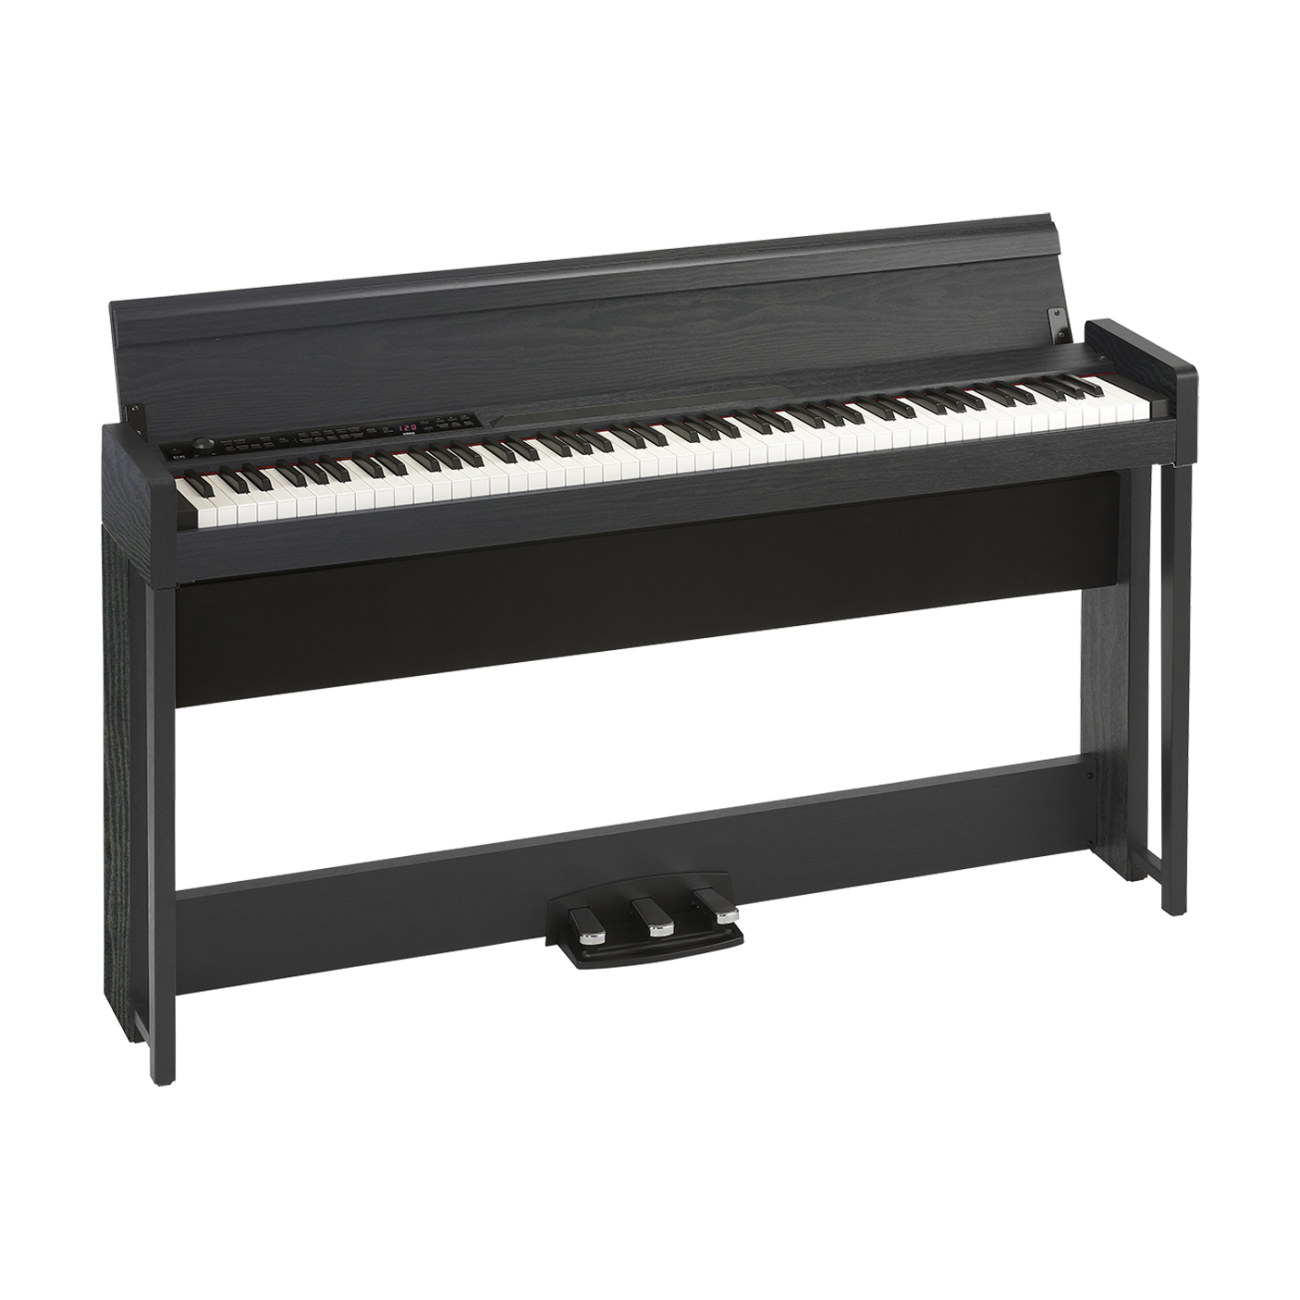 Korg - Concert Series - C1 Air Digital Pianos